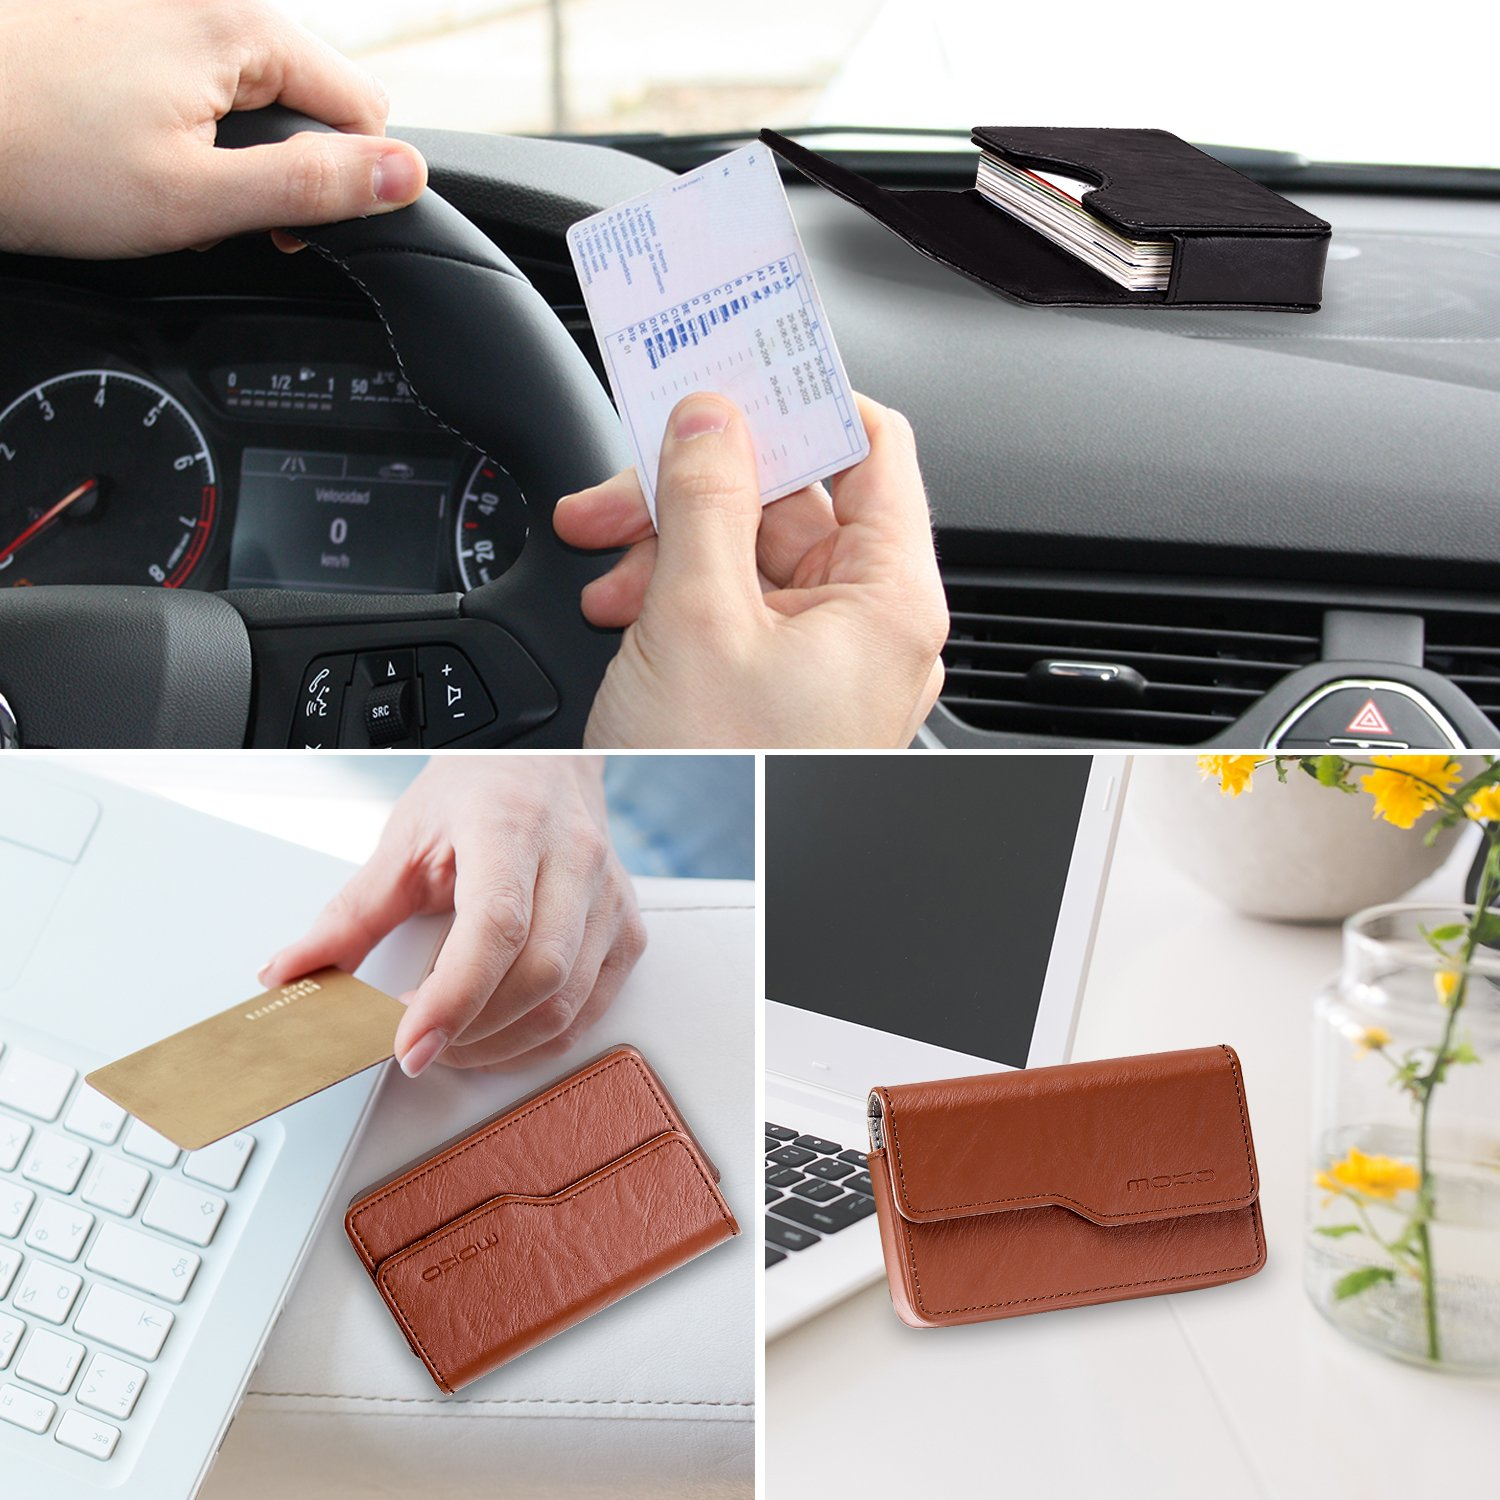 Brown Business Card Holder ID Card Case MoKo Professional Premium PU Leather Universal Credit Card Name Card Holder Wallet Organizer with Magnetic Shut